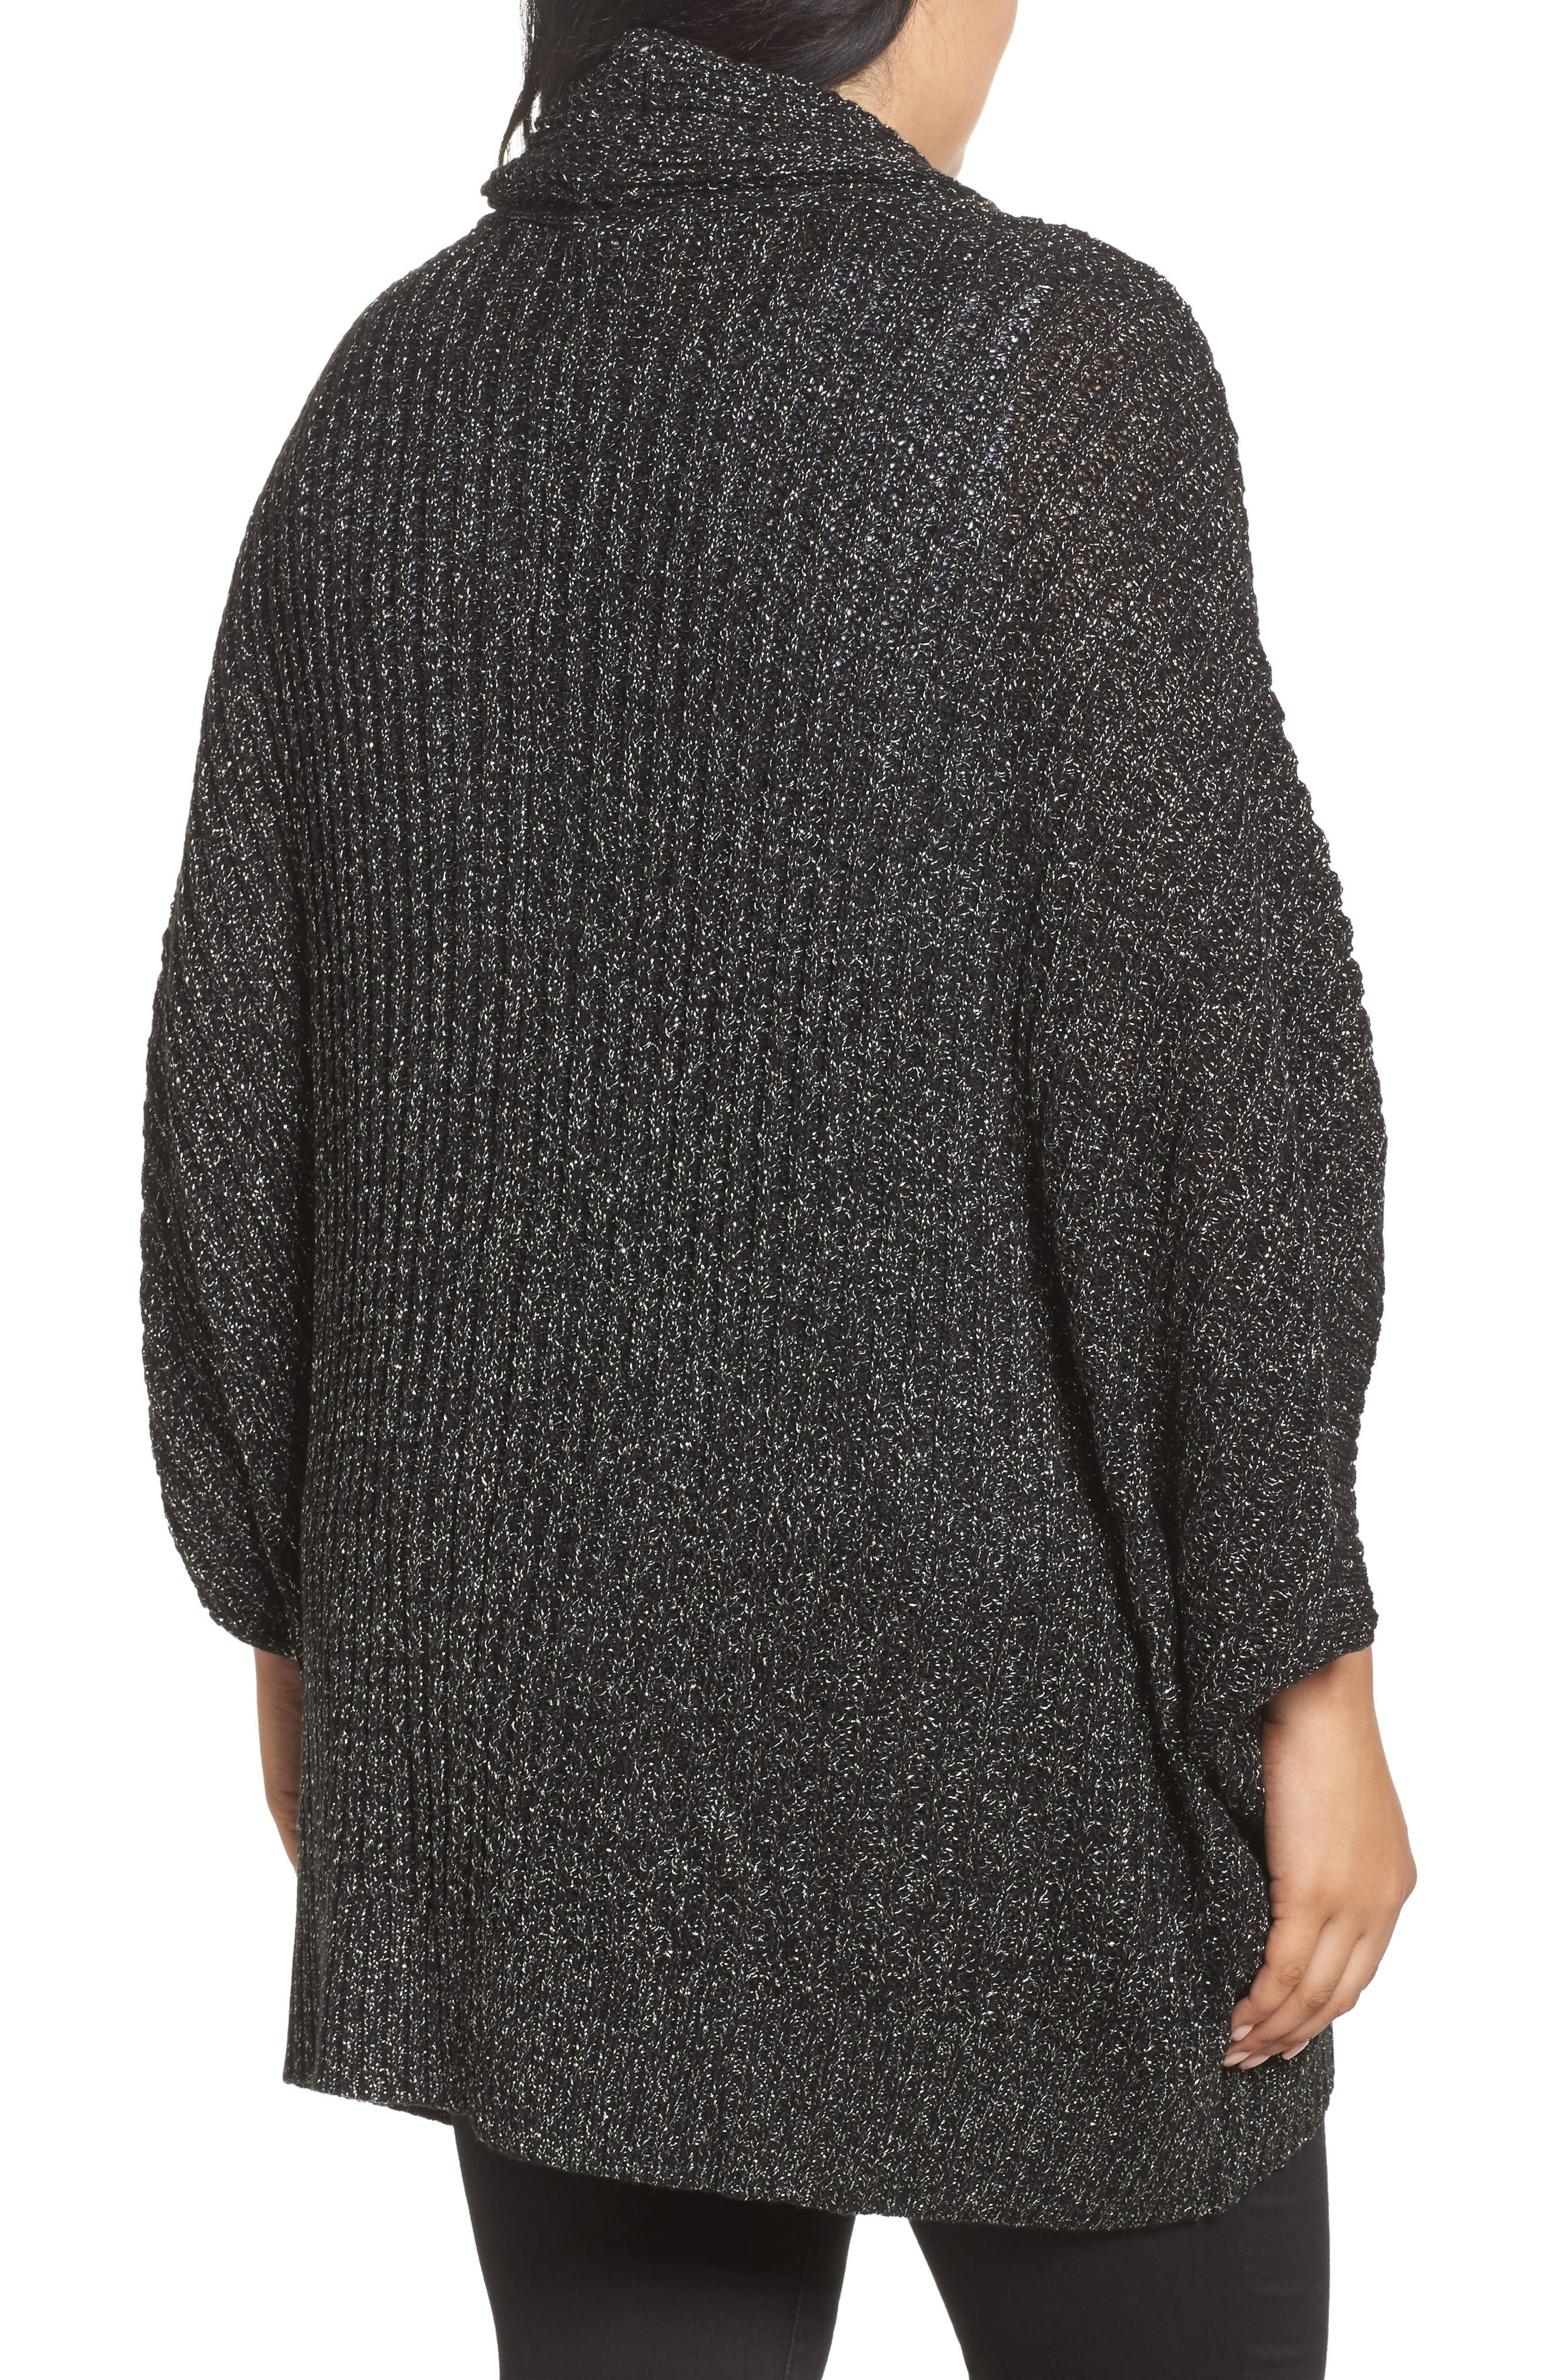 Cocoon Cardigan,                             Alternate thumbnail 2, color,                             017